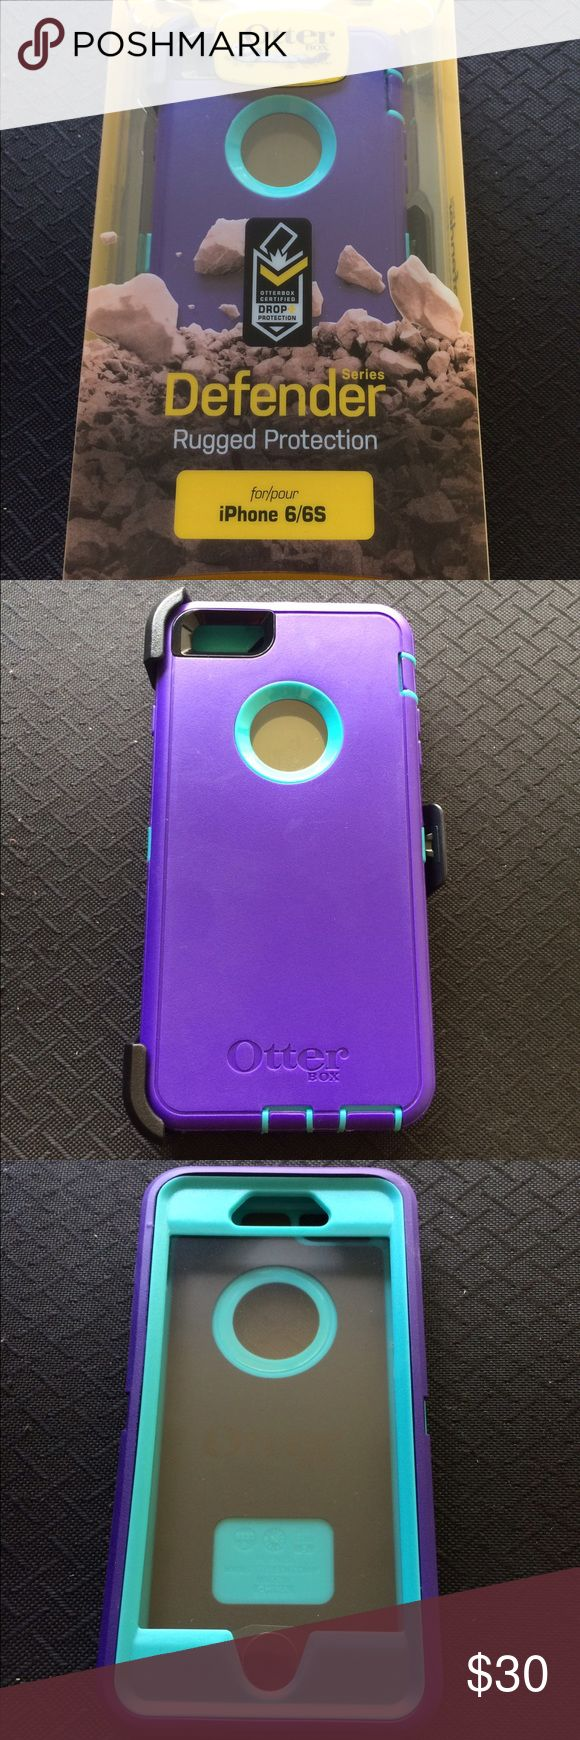 iPhone 6 otterbox Defender case Otter-box  For 6 & 6S   ✅ ✅Please read before buying! ✅ Next Day Shipping !! ✅Only for iPhone 6 & 6S  ✅comes with belt clip ✅comes with screen protector    Customer service is my main goal, I am always willing to make my customer happy if a problem arises. Thank you.  Otter Box Certified Drop+ Protection  you can be sure your device is protected from the wear and tear of everyday use. OtterBox Accessories